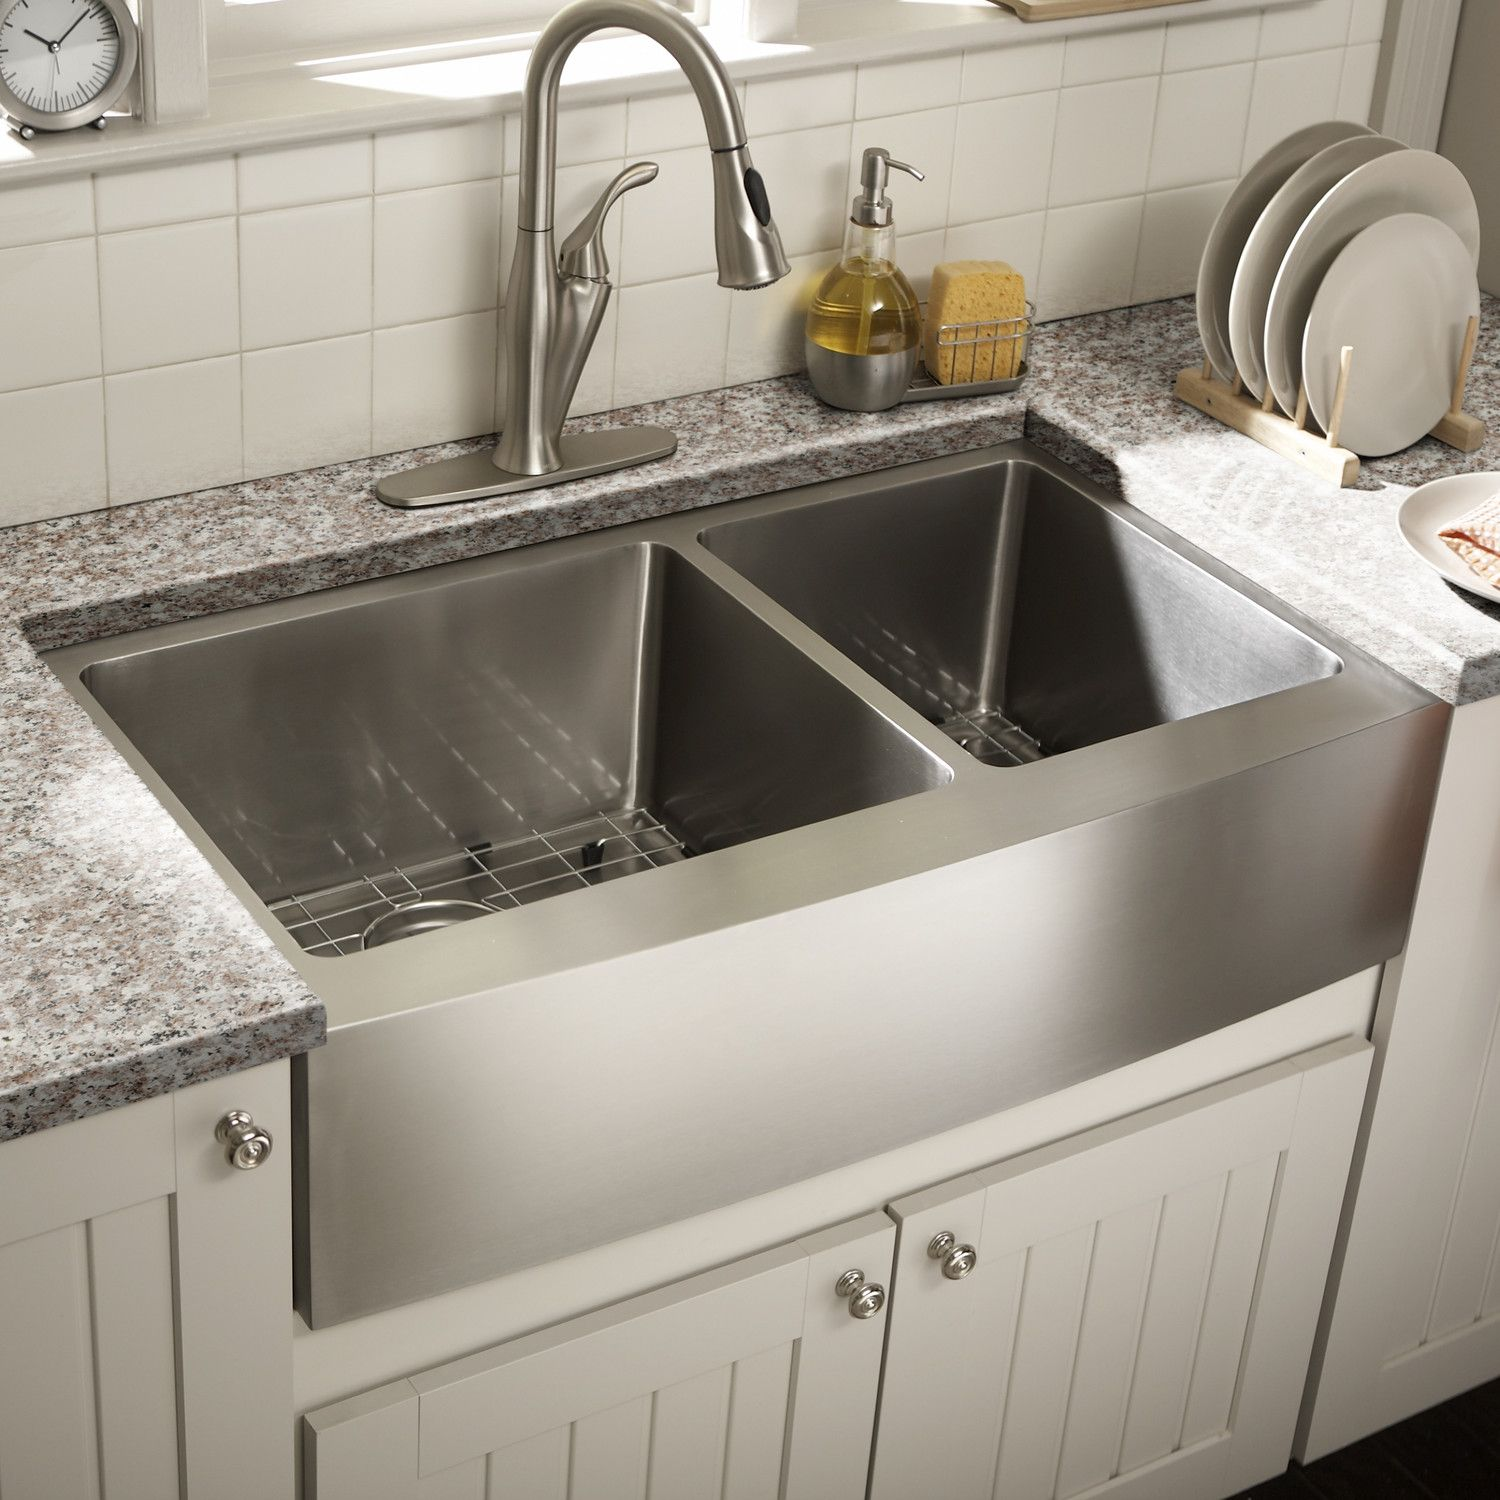 Want double stainless farmhouse sink Schon Farmhouse 36